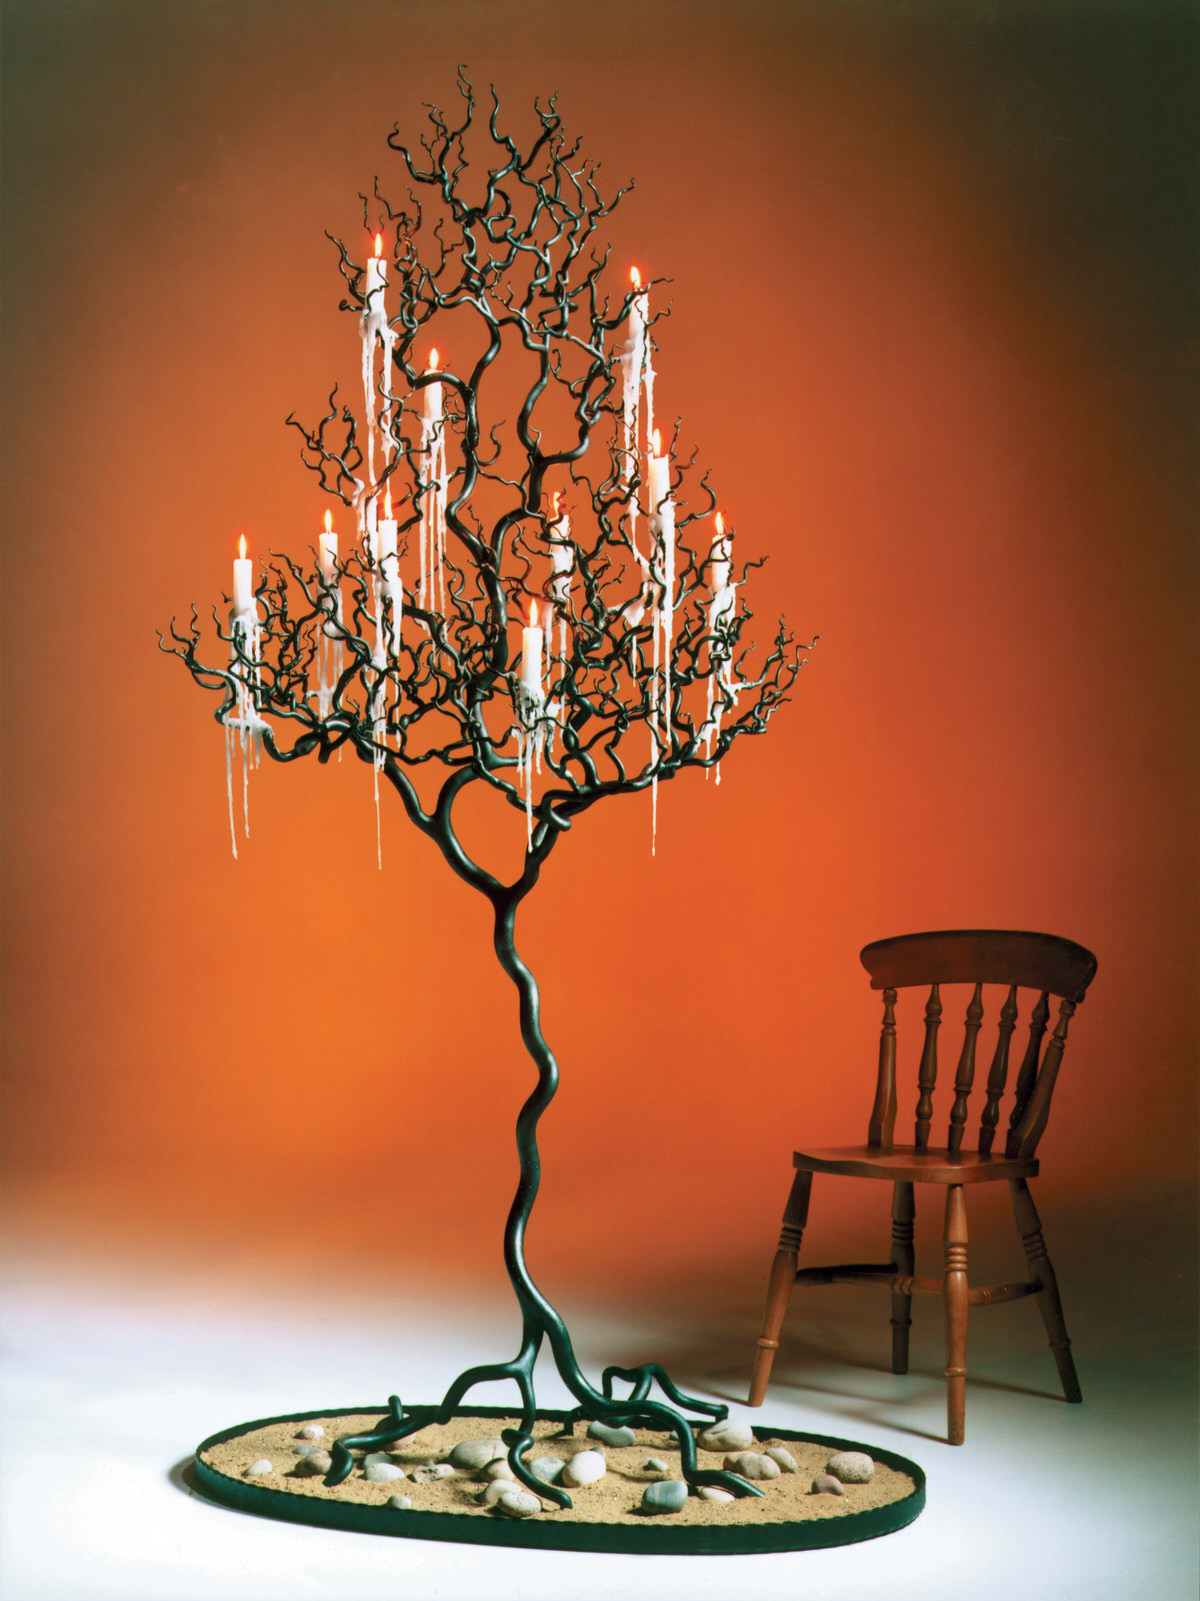 Forged Steel Candeltree sculpture unique candleholder sculptural artistic candelstick metal tree by Mark Reed